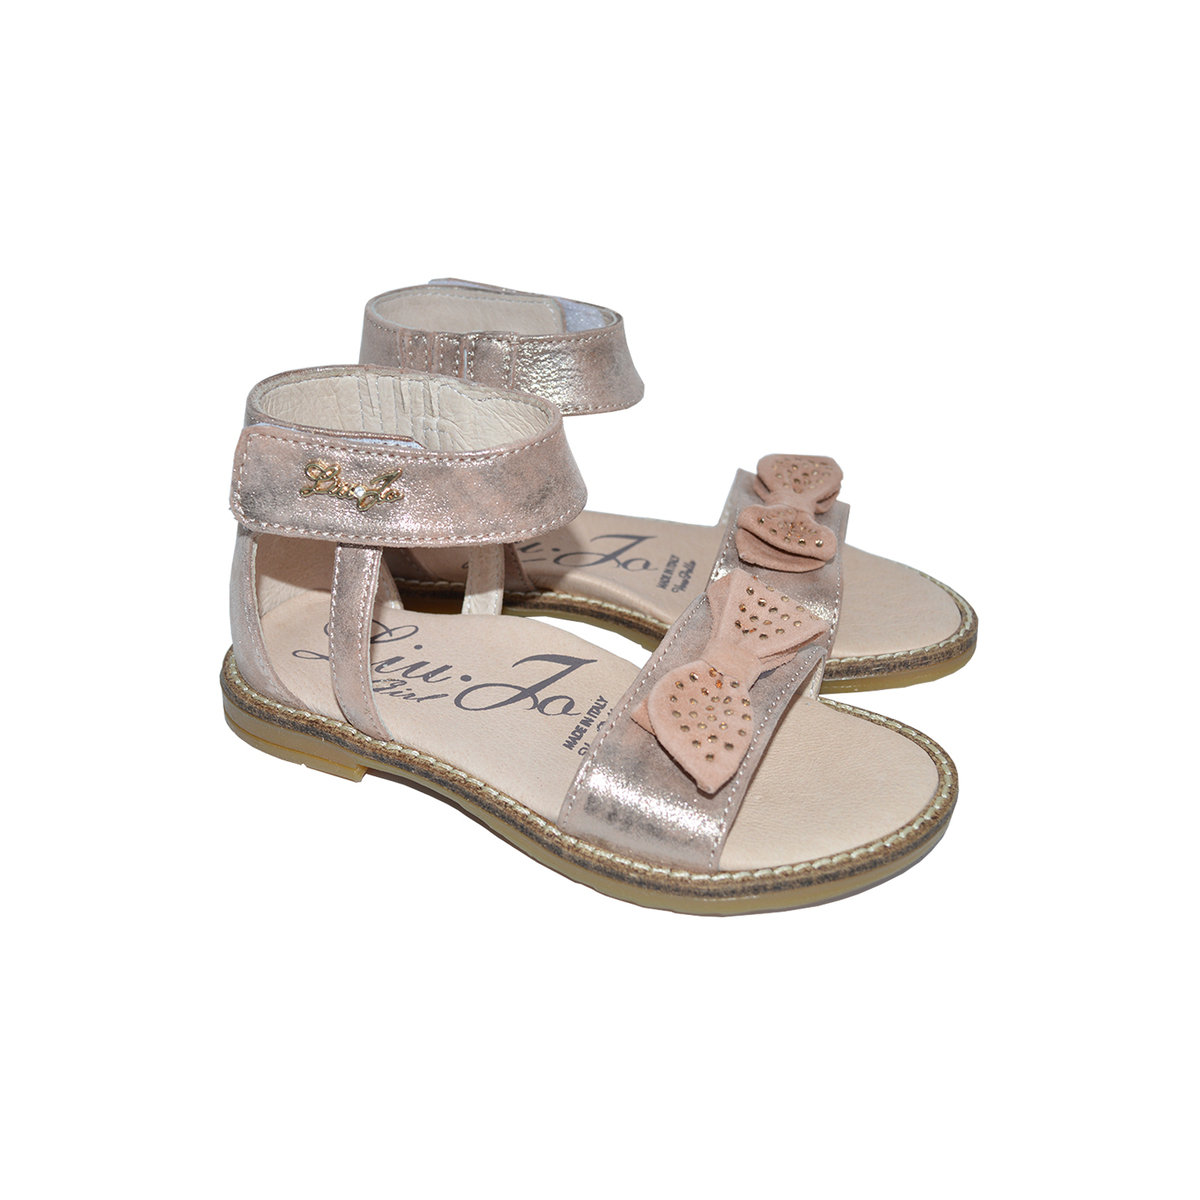 Baby Girls   Toddlers Sandals with Crystal Embellished Bow Thumbnail ebd5cb0435f